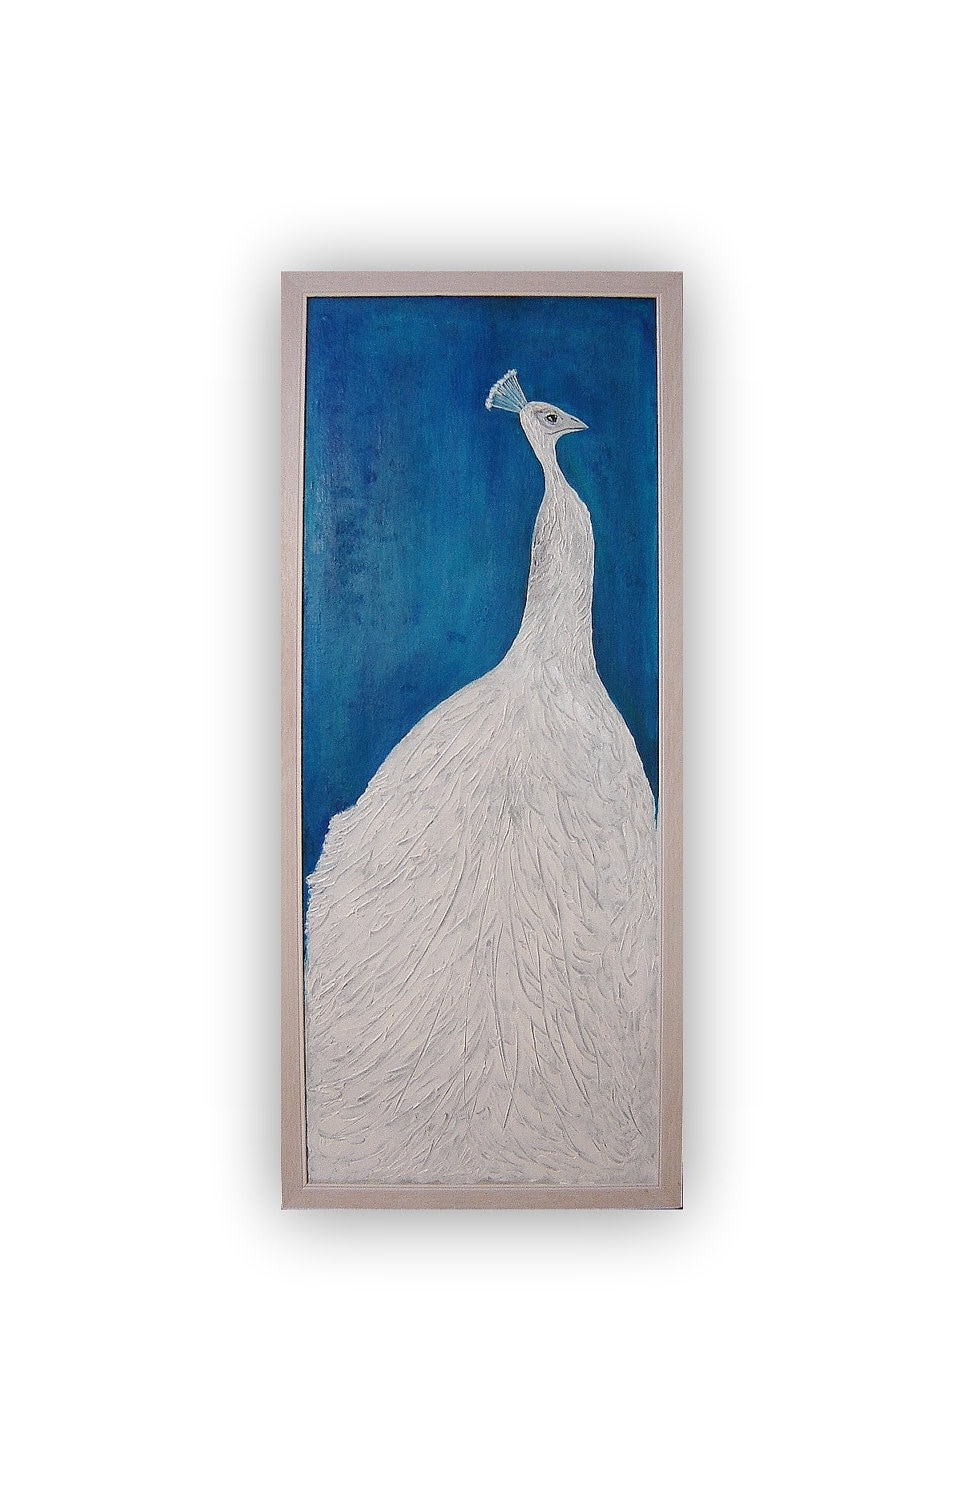 White peacock. Original acrylic painting. Canvas. Framed. Textured painting. Modern Contemporary Art. - almondtreeart